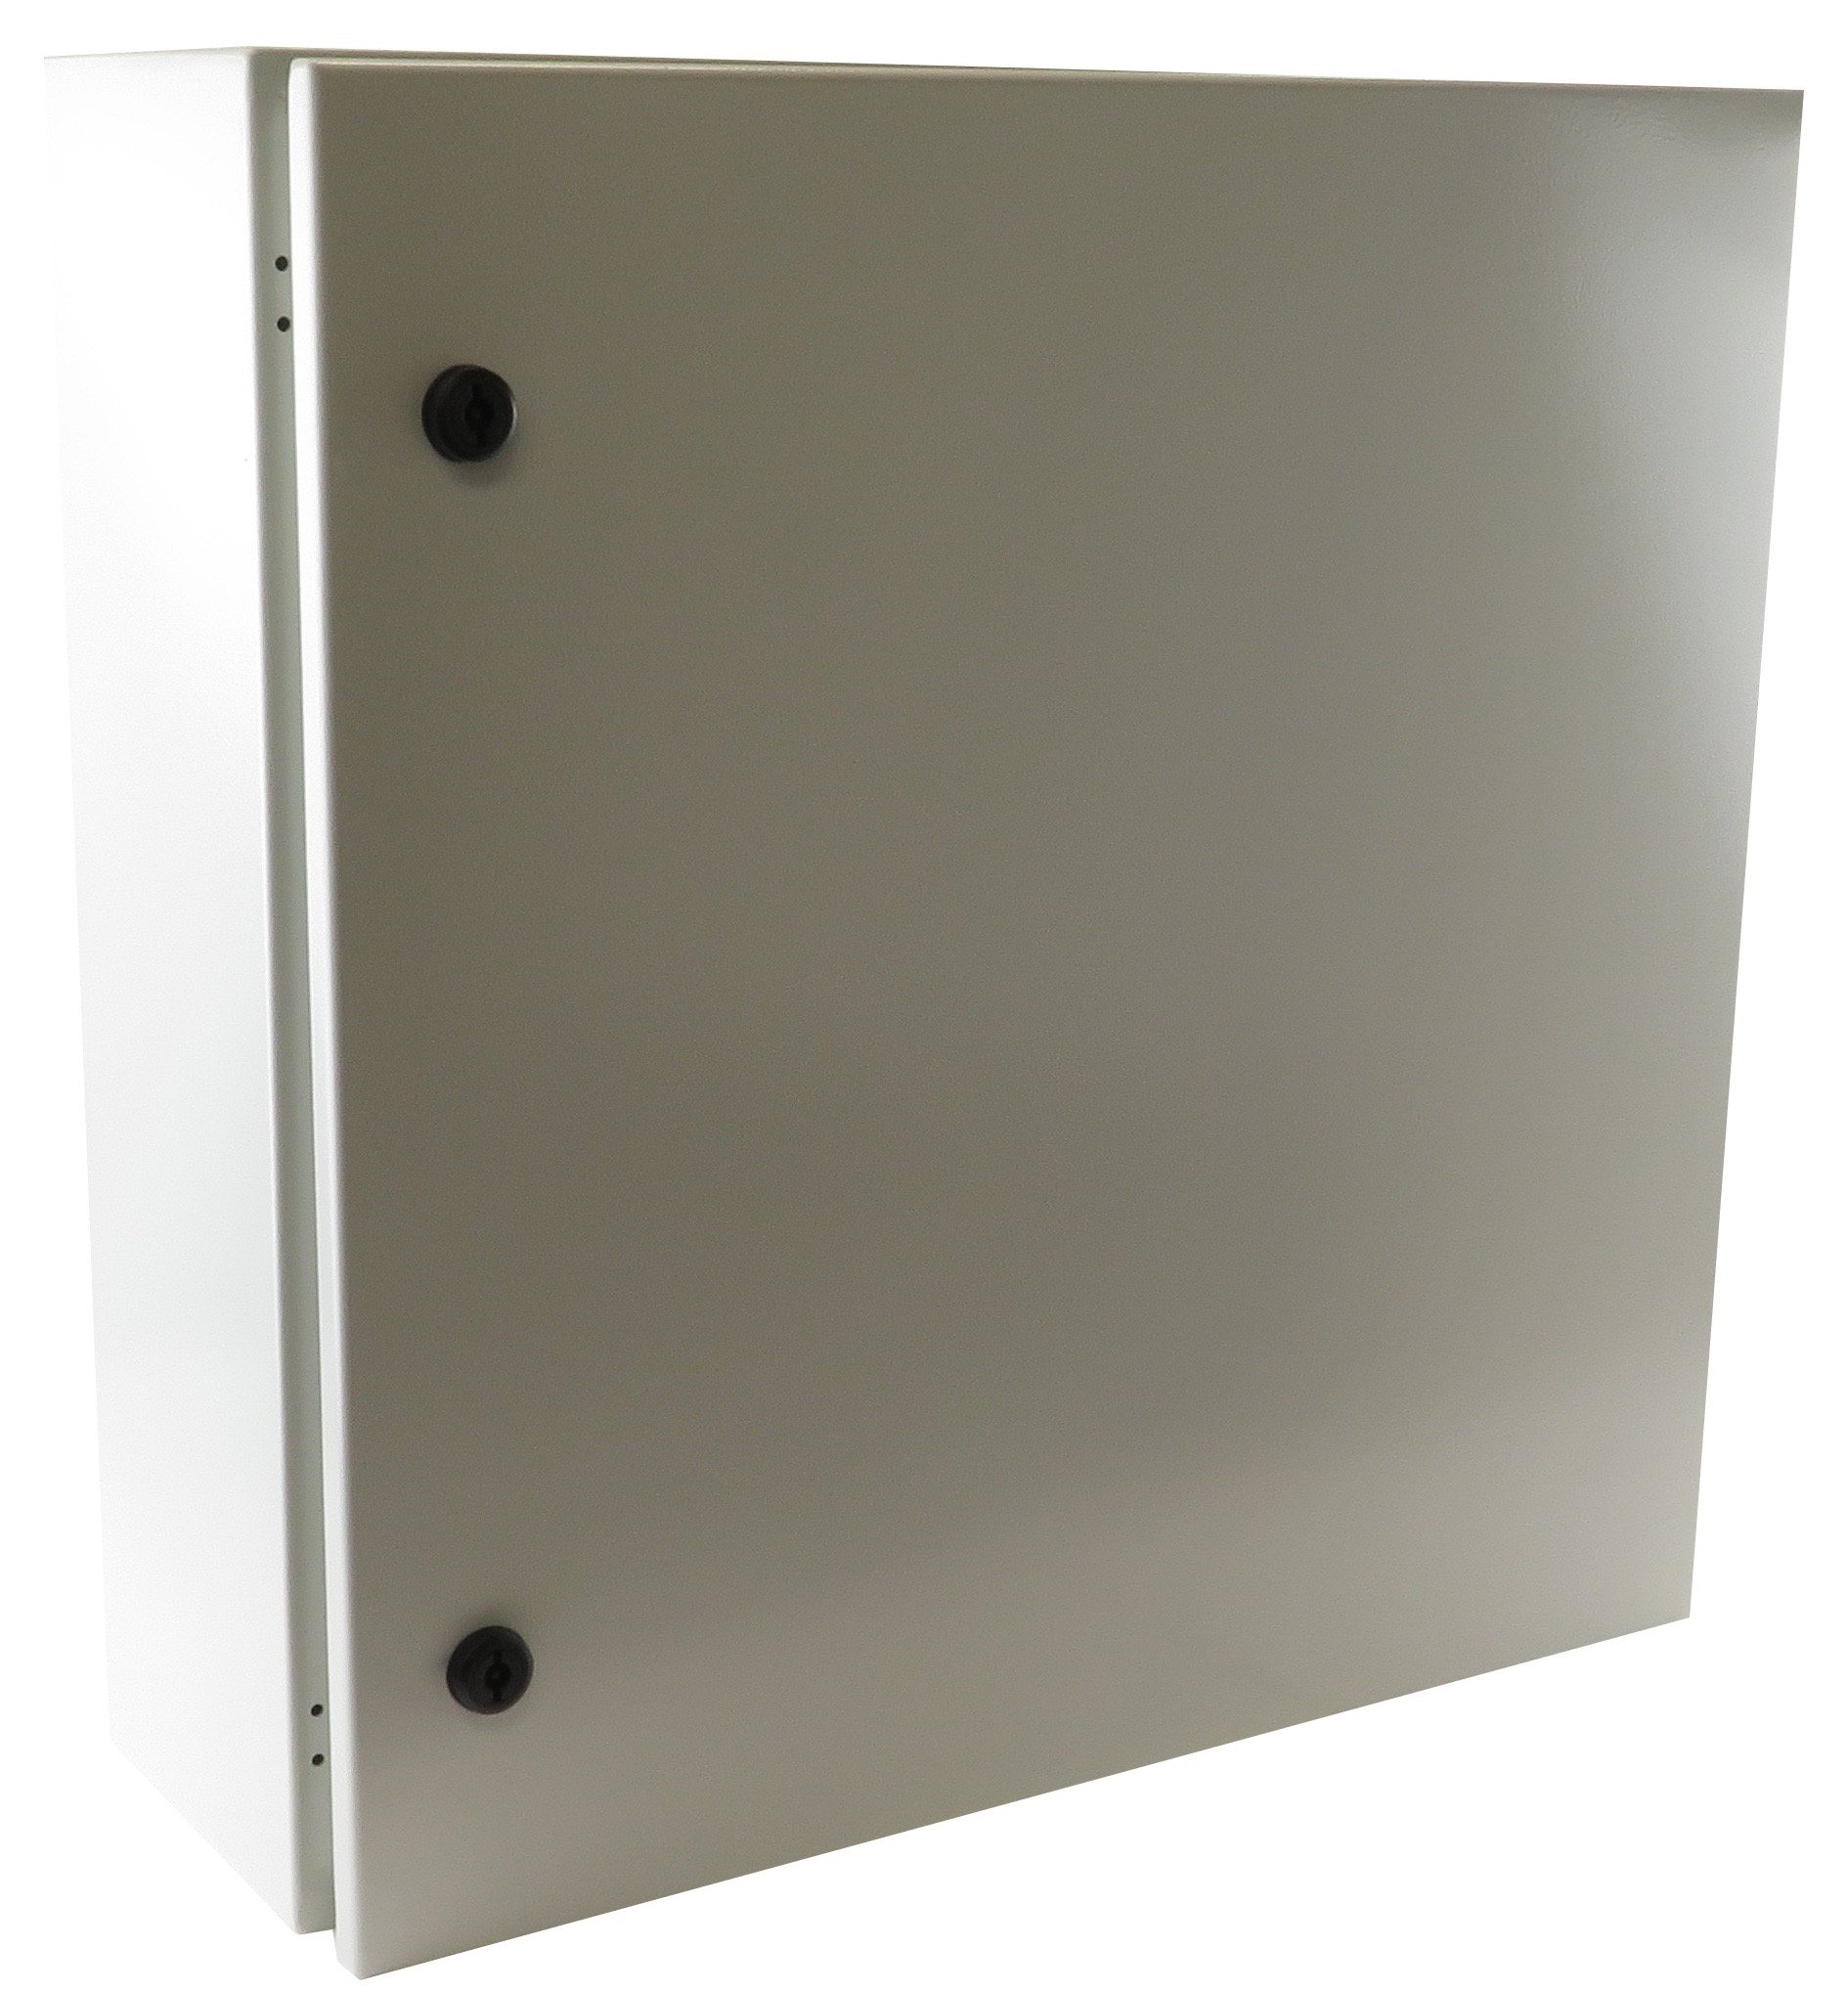 Yuco Fully Enclosed (No Gland Plate) IP66 Enclosure, UL Certified, Nema 4, 16 Gauge, Single Door Hinge Cover, Wall-Mount, Galvanized Backplate (24 x 20 x 10)